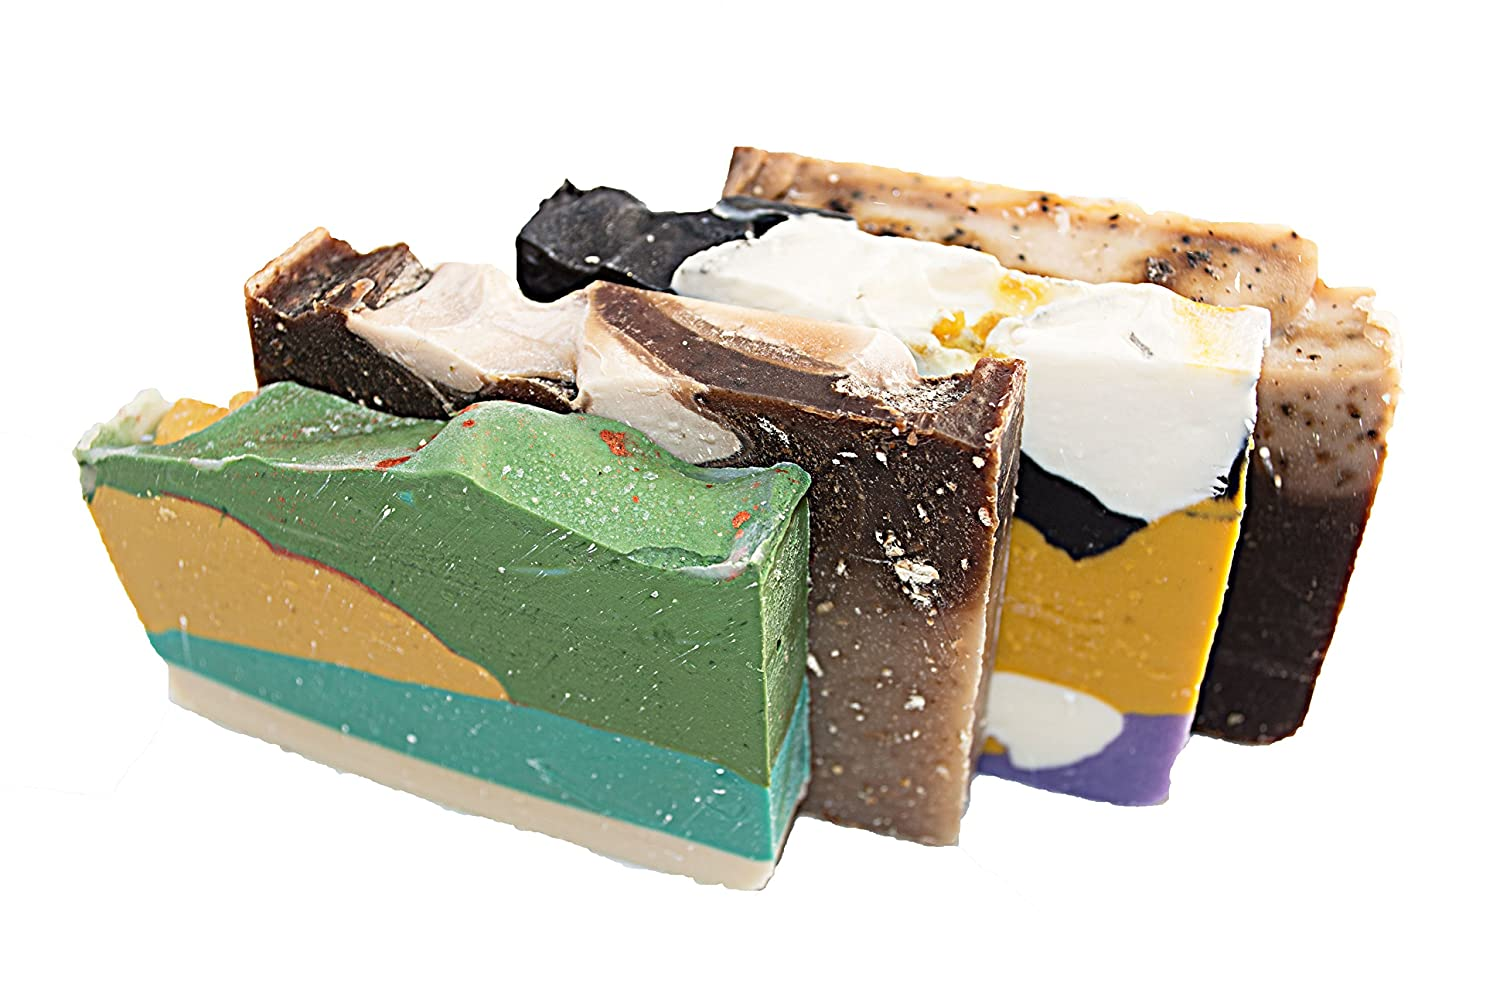 Morning Energy Soap Bar Set (4 Guest Bars)-All Soaps For Energy Packed Shower. Oatmeal & Honey, Green Tea, White Tea & Ginger And Cafa Au Lait Soap. Set Of 4-2 OZ Bar Falls River Soap Company LLC 0015 VE MRNG CL